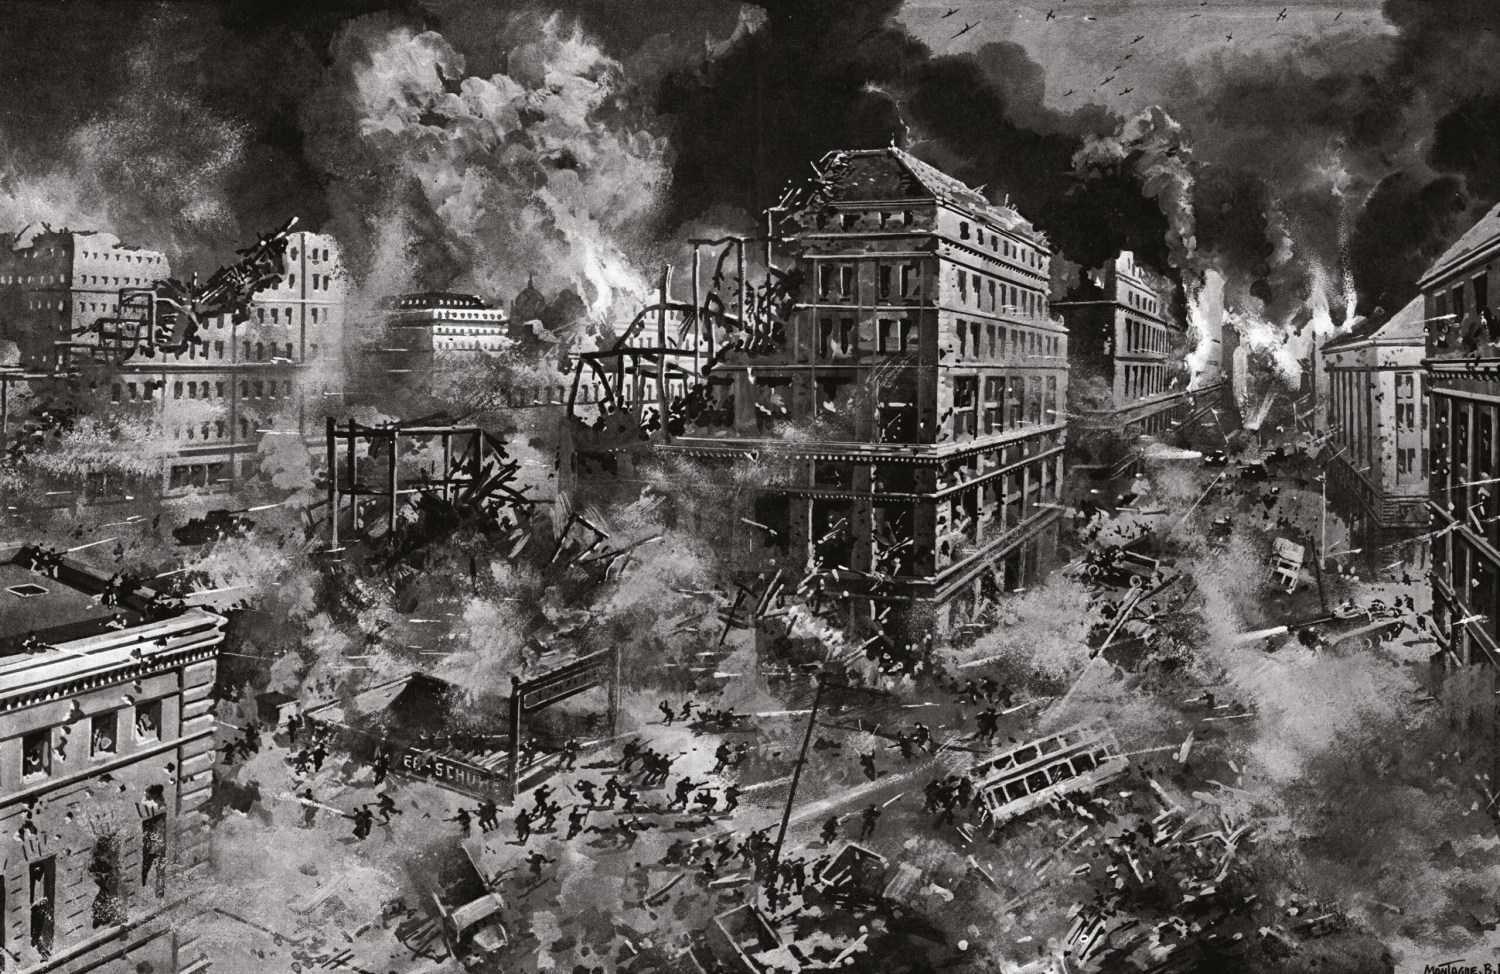 BELOW A contemporary war artist's depiction of the fighting between the Wehrmacht and the Red Army in the streets of Berlin.